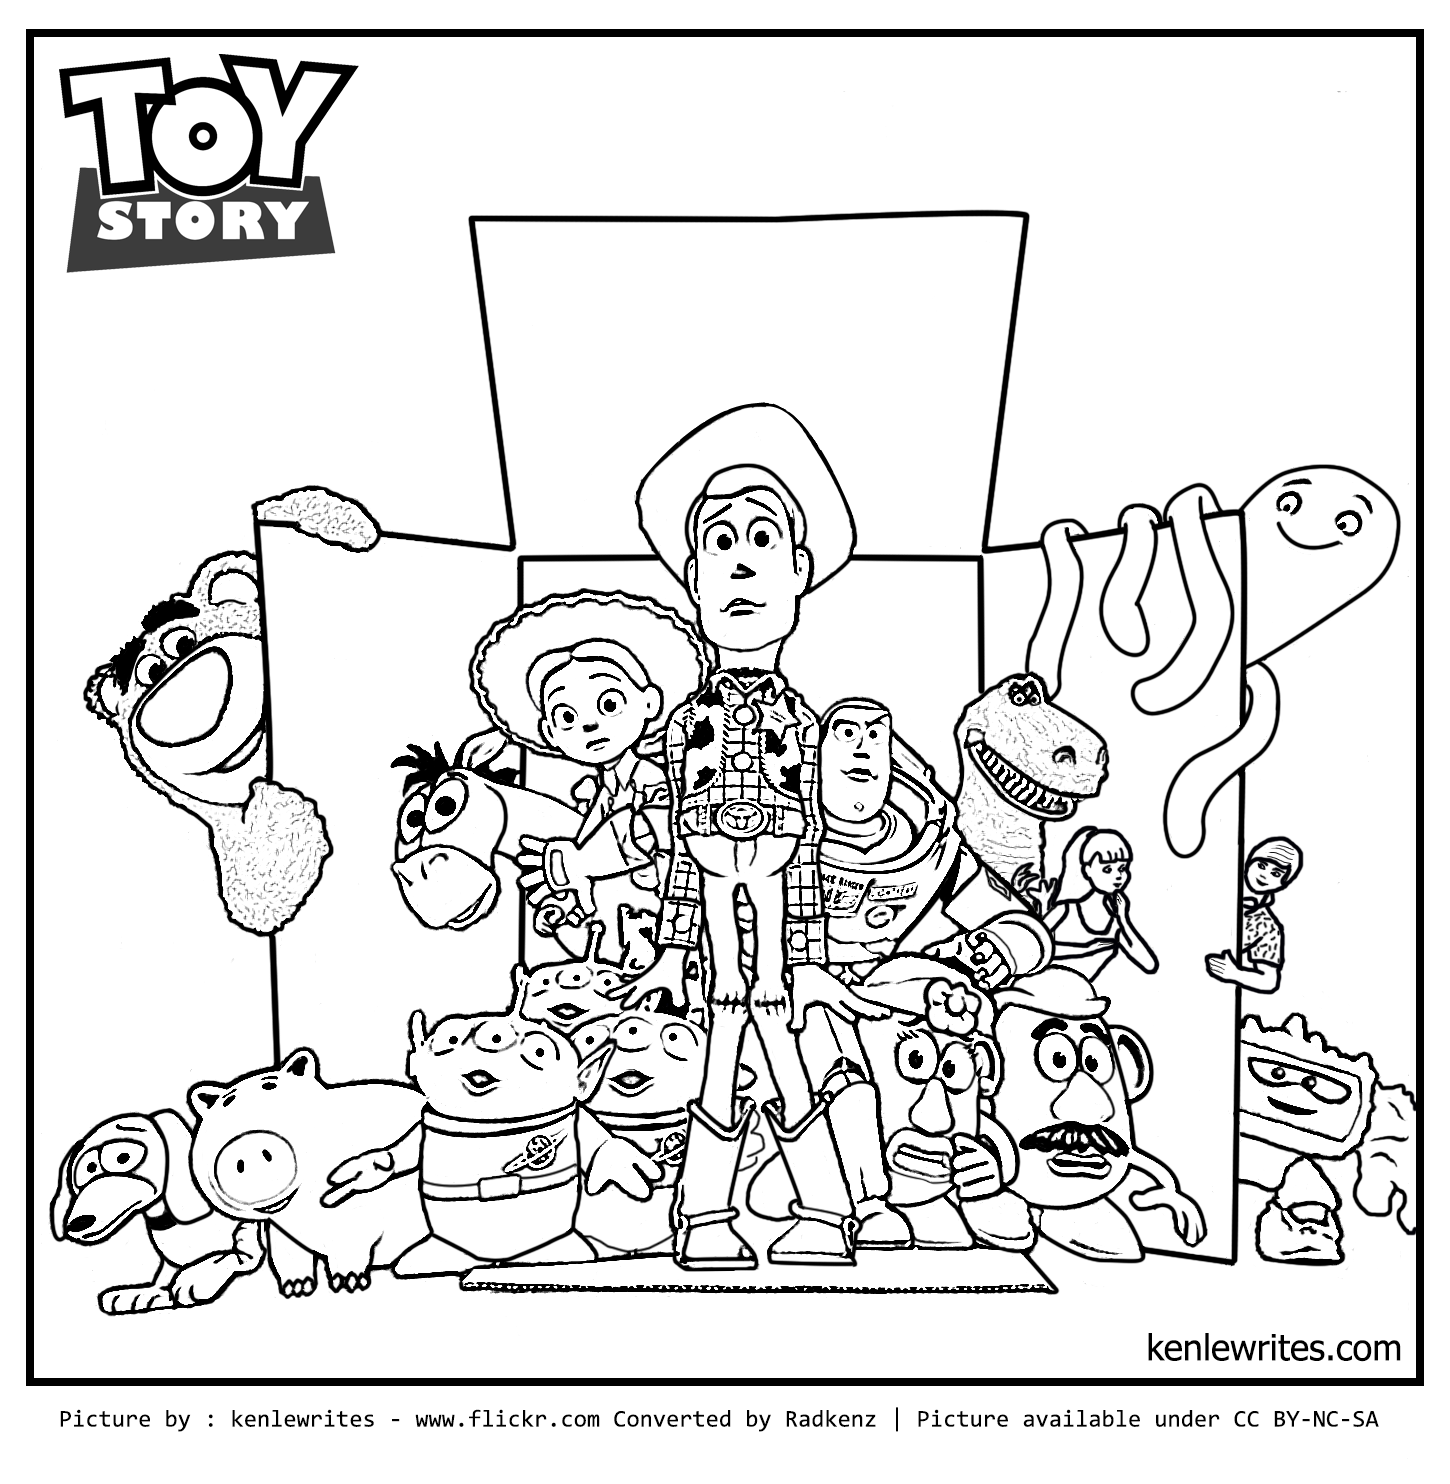 Free Toy Story 4 Coloring Pages Pictures